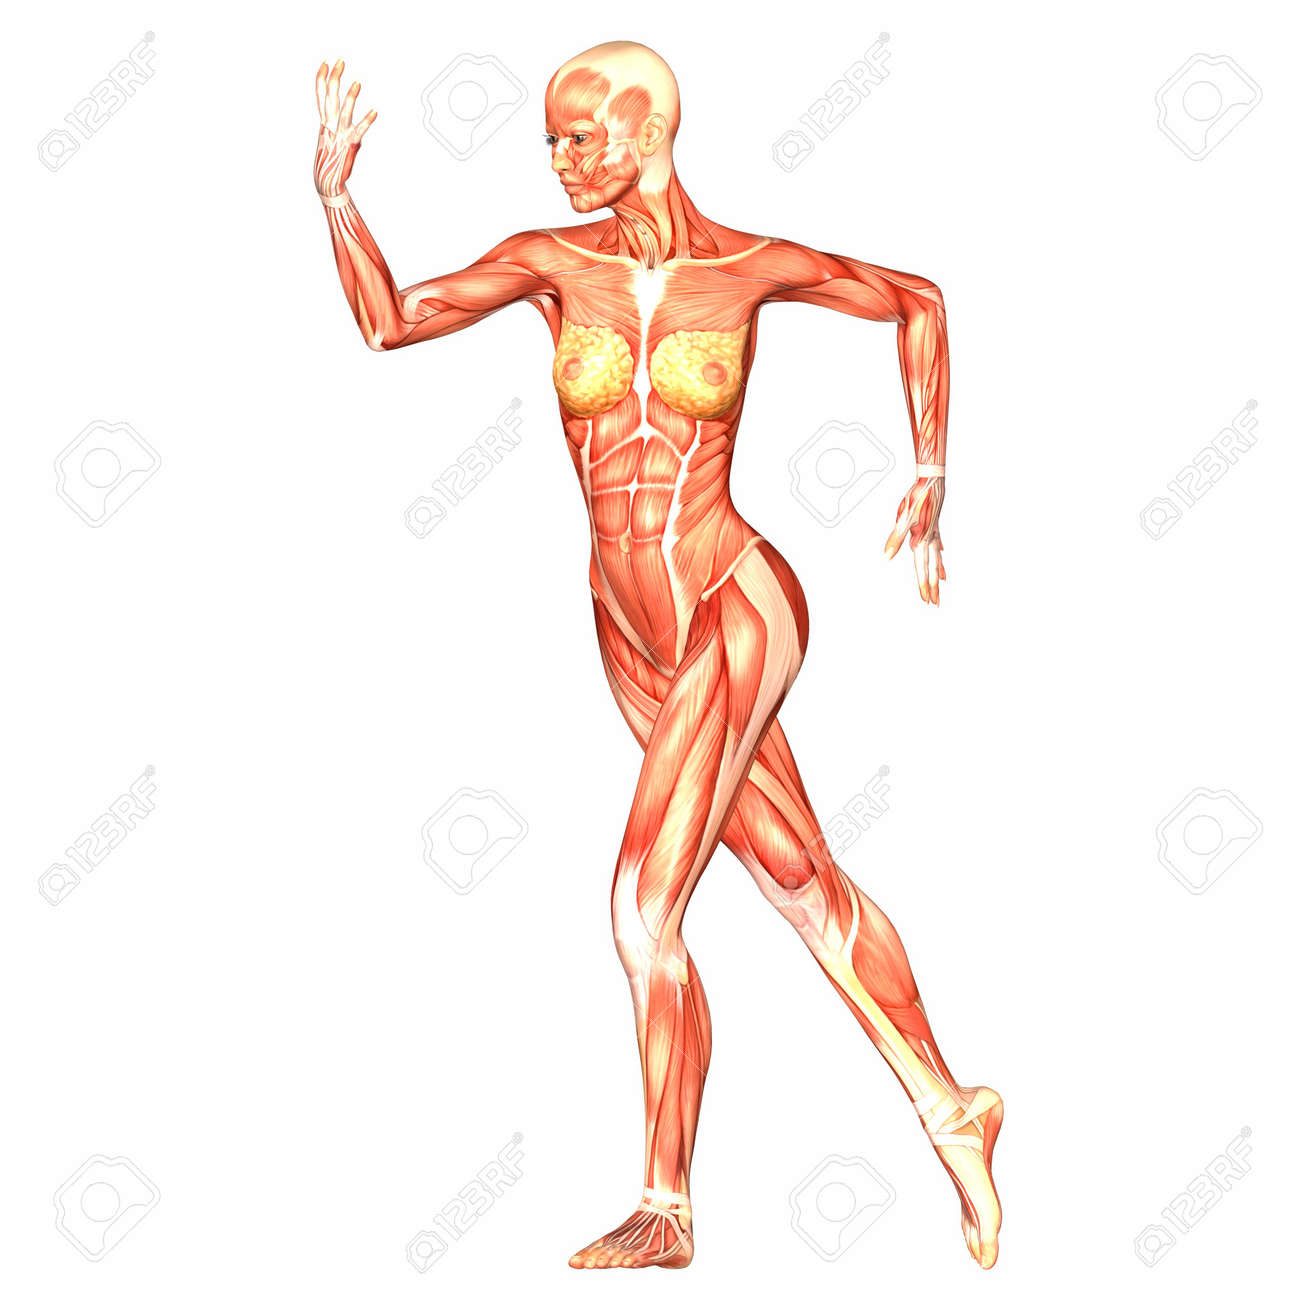 Illustration of the anatomy of the female human body isolated on a white background Stock Photo - 12741694